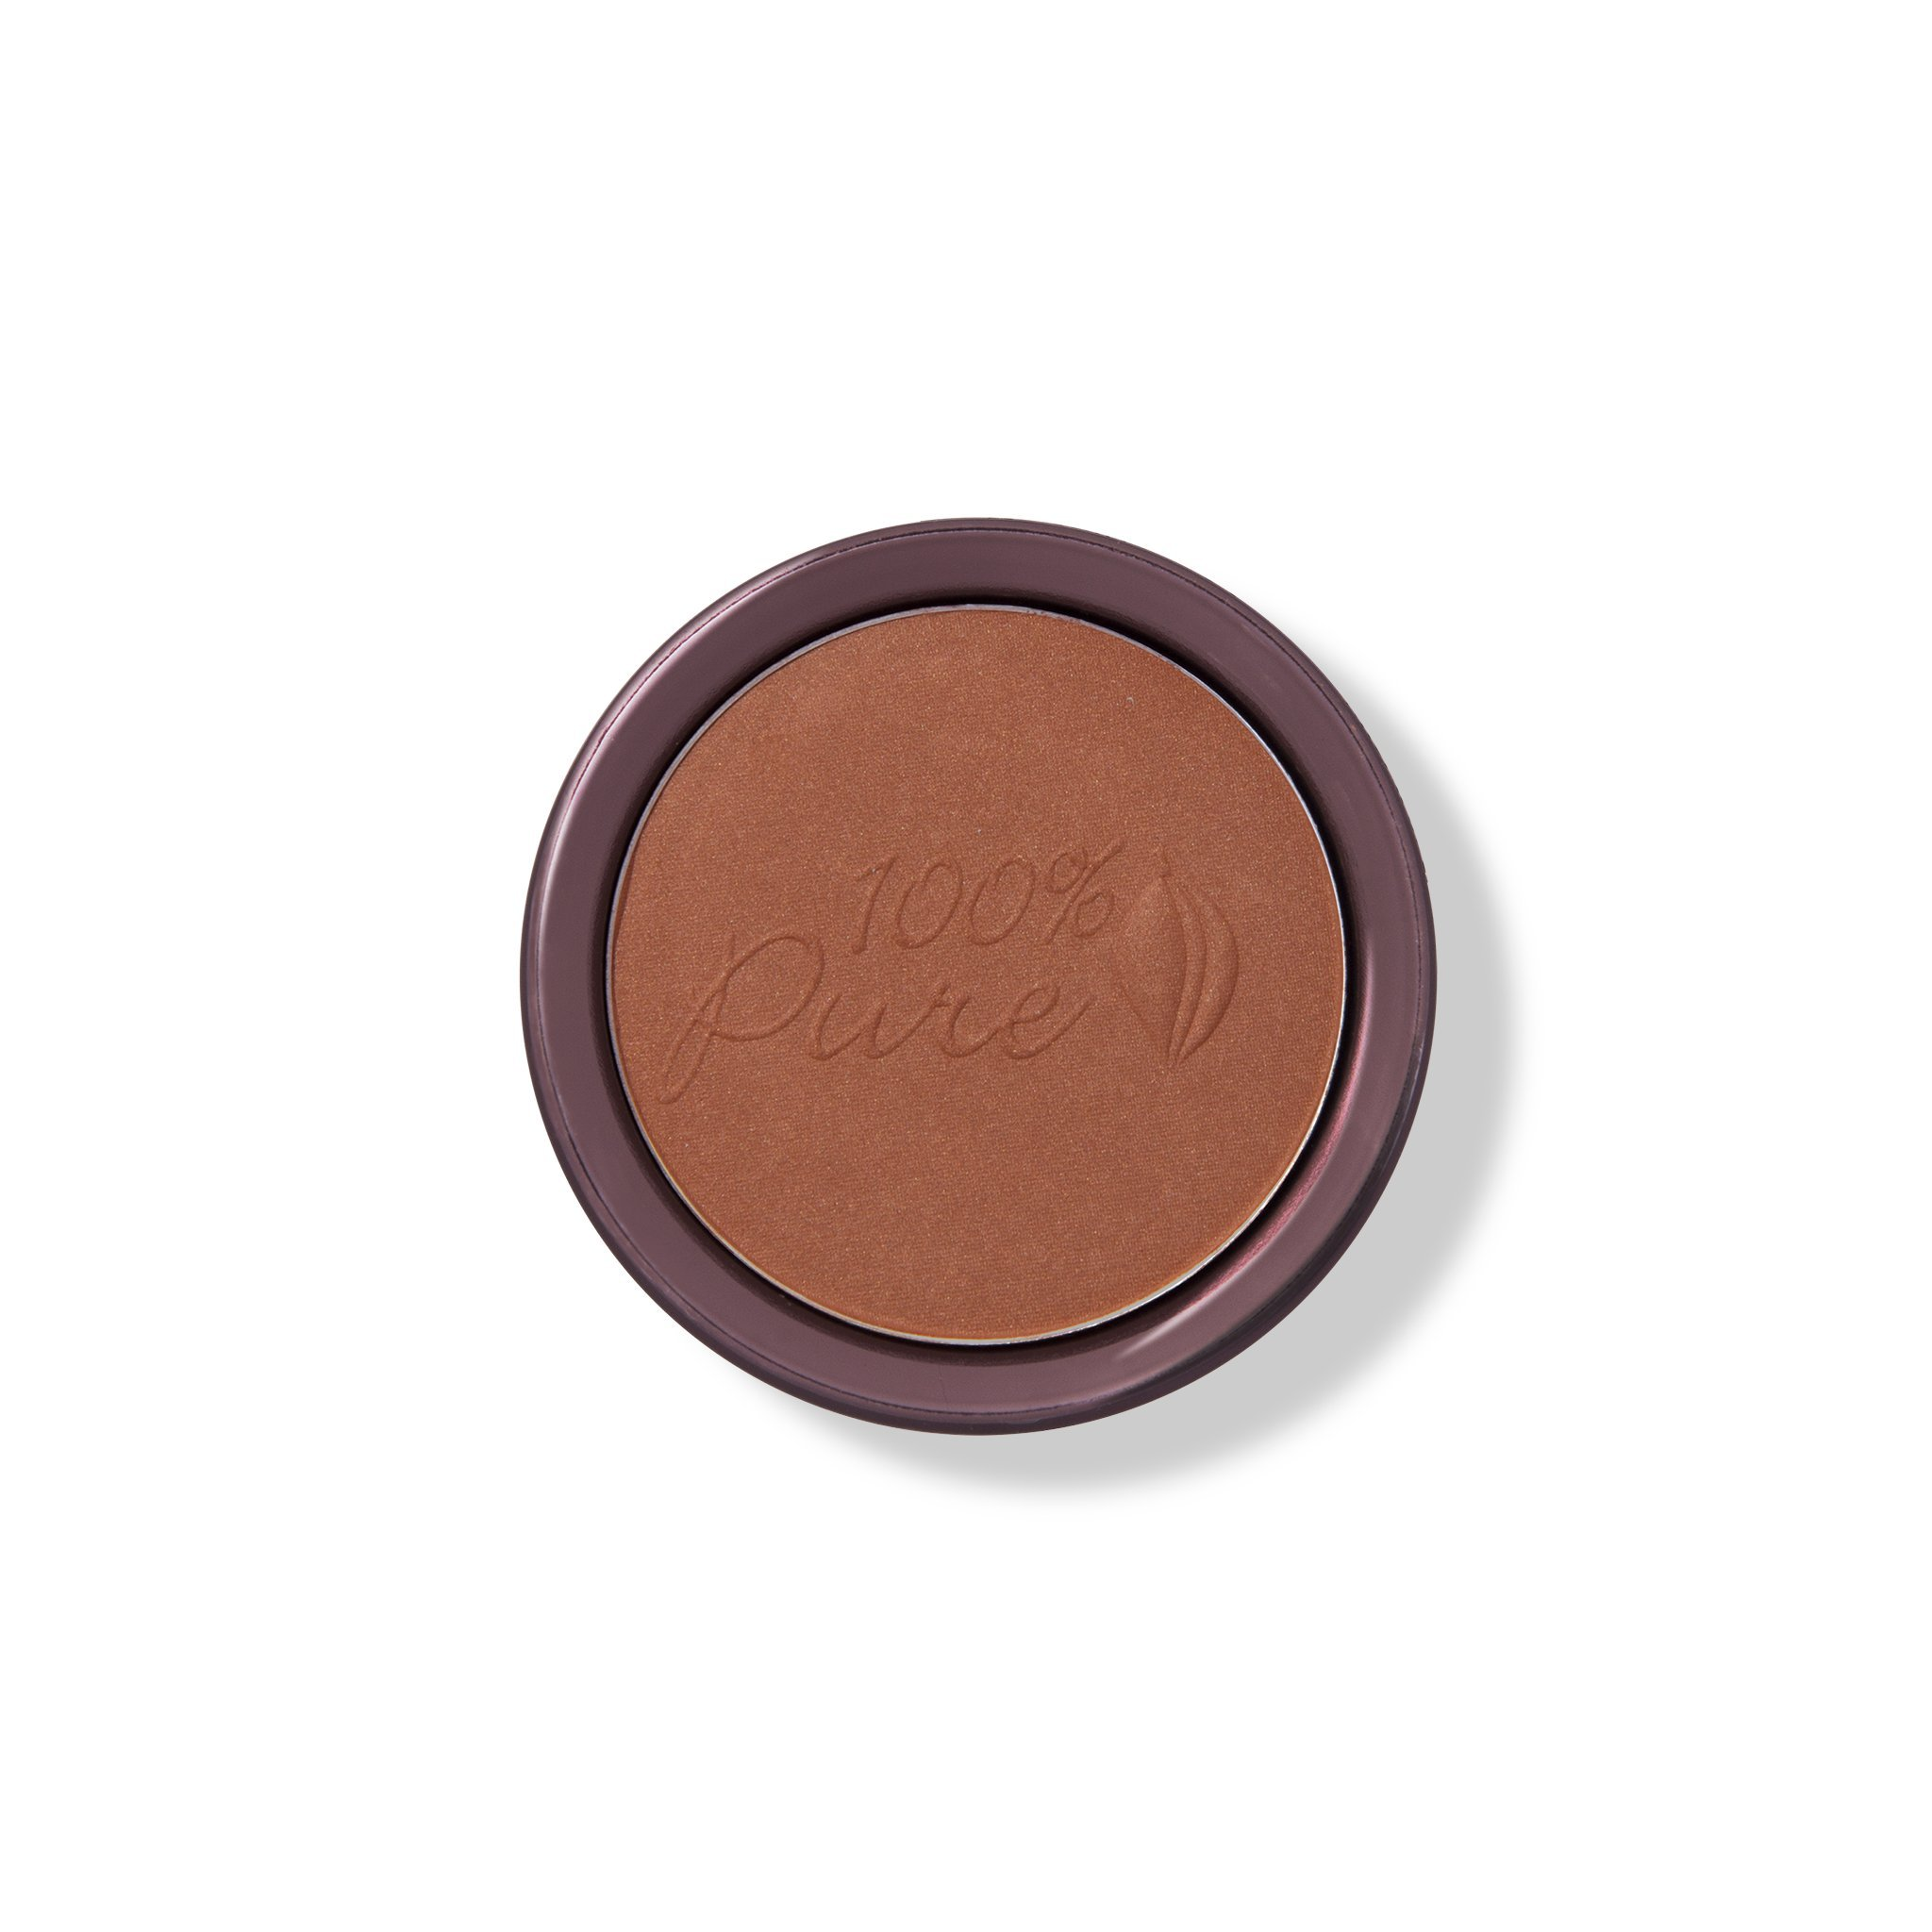 100% Pure Cocoa Pigmented Bronzer - Cocoa Glow by 100% PURE (Image #1)